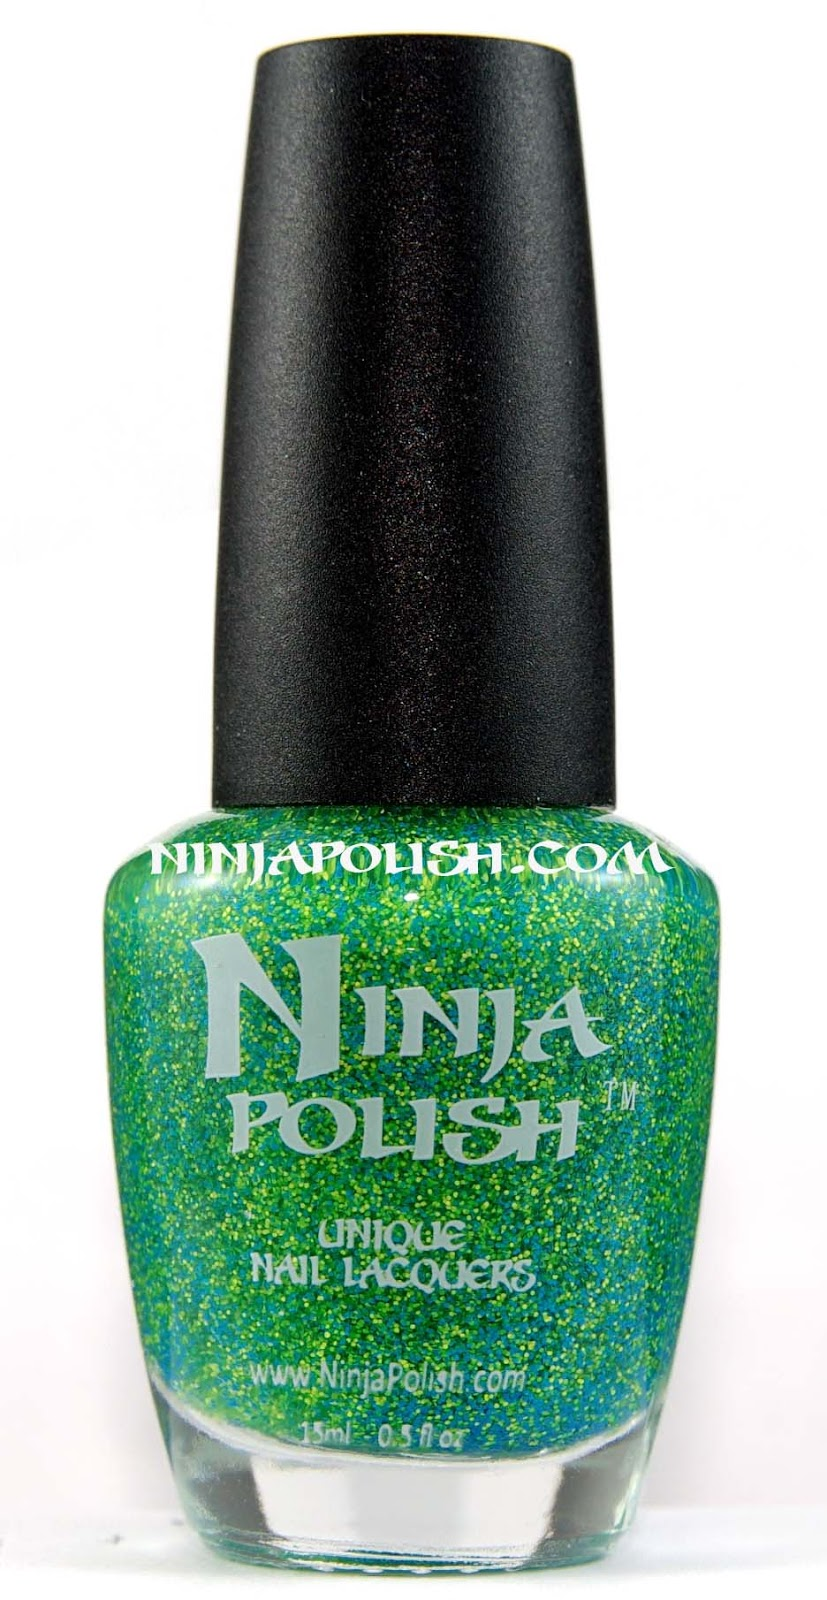 http://www.ninjapolish.com/Floam-R.html